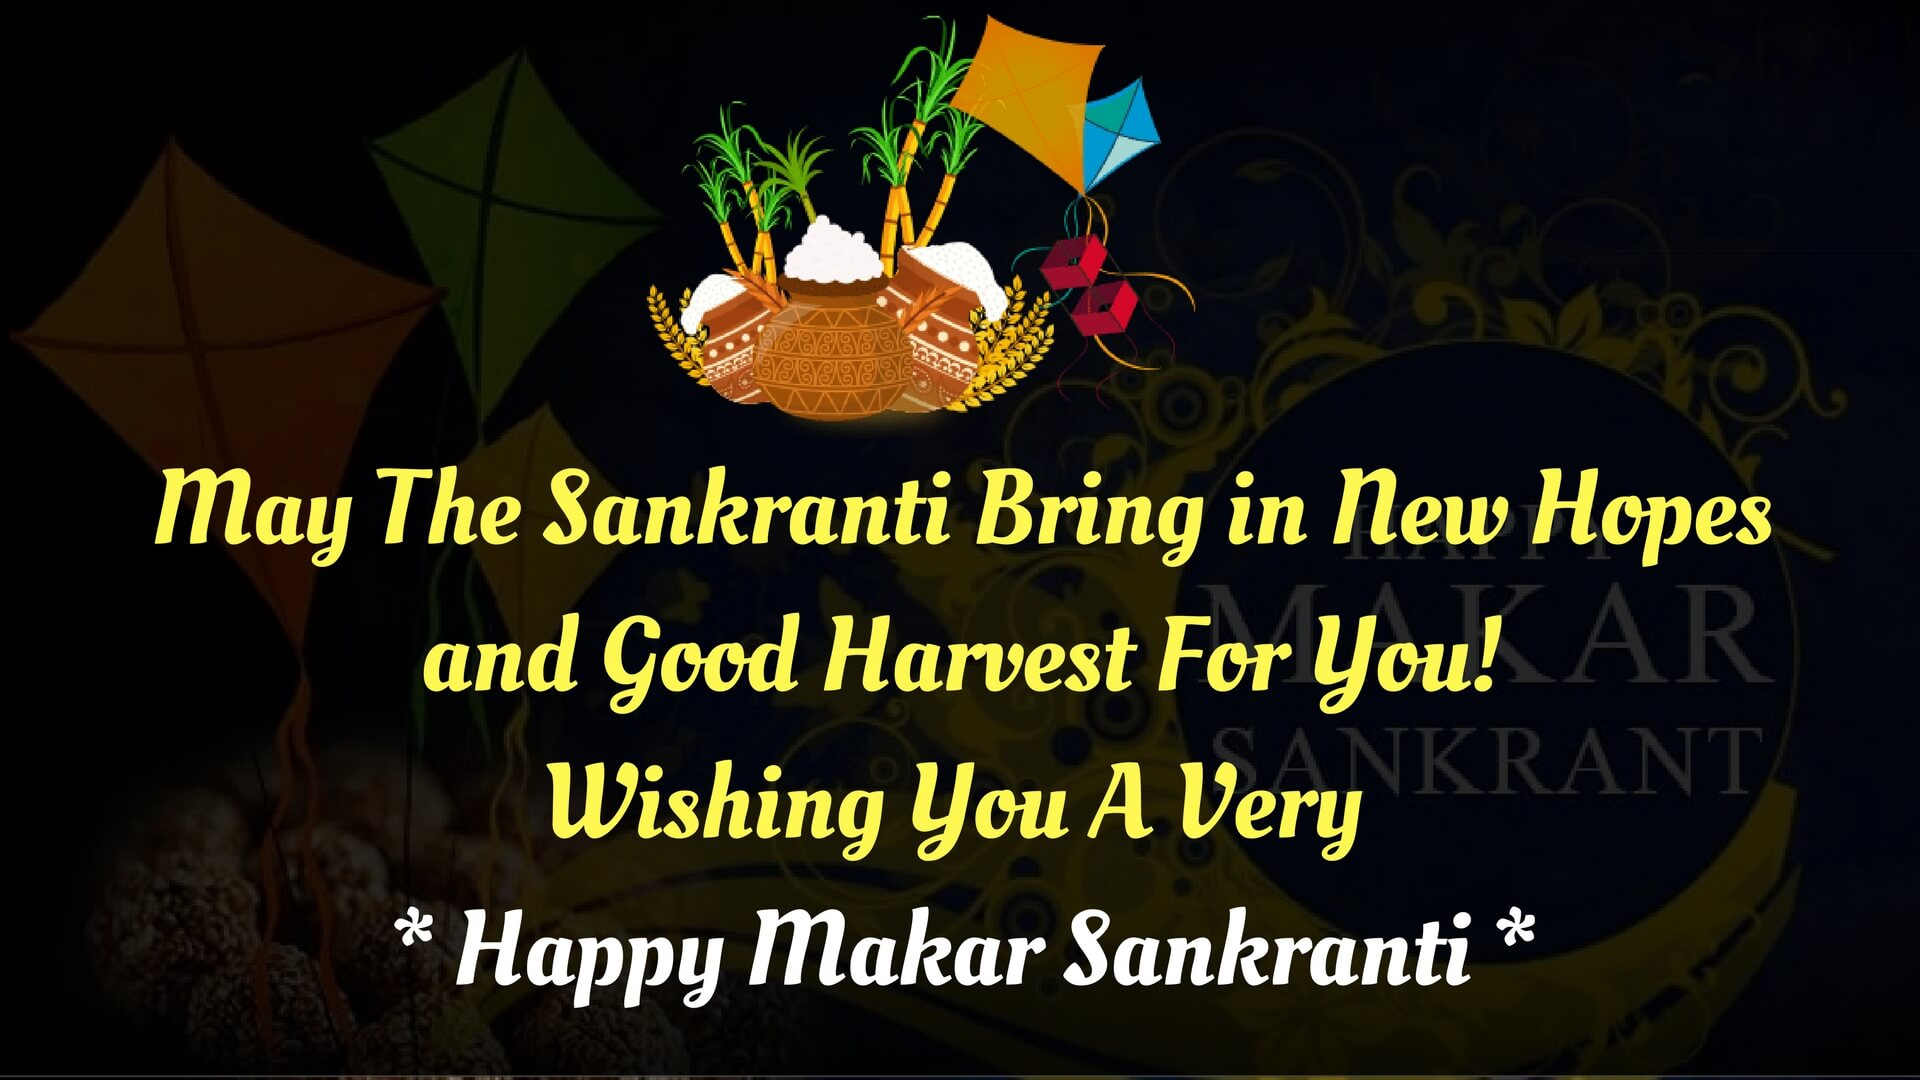 Makar Sankranti Slogan In English